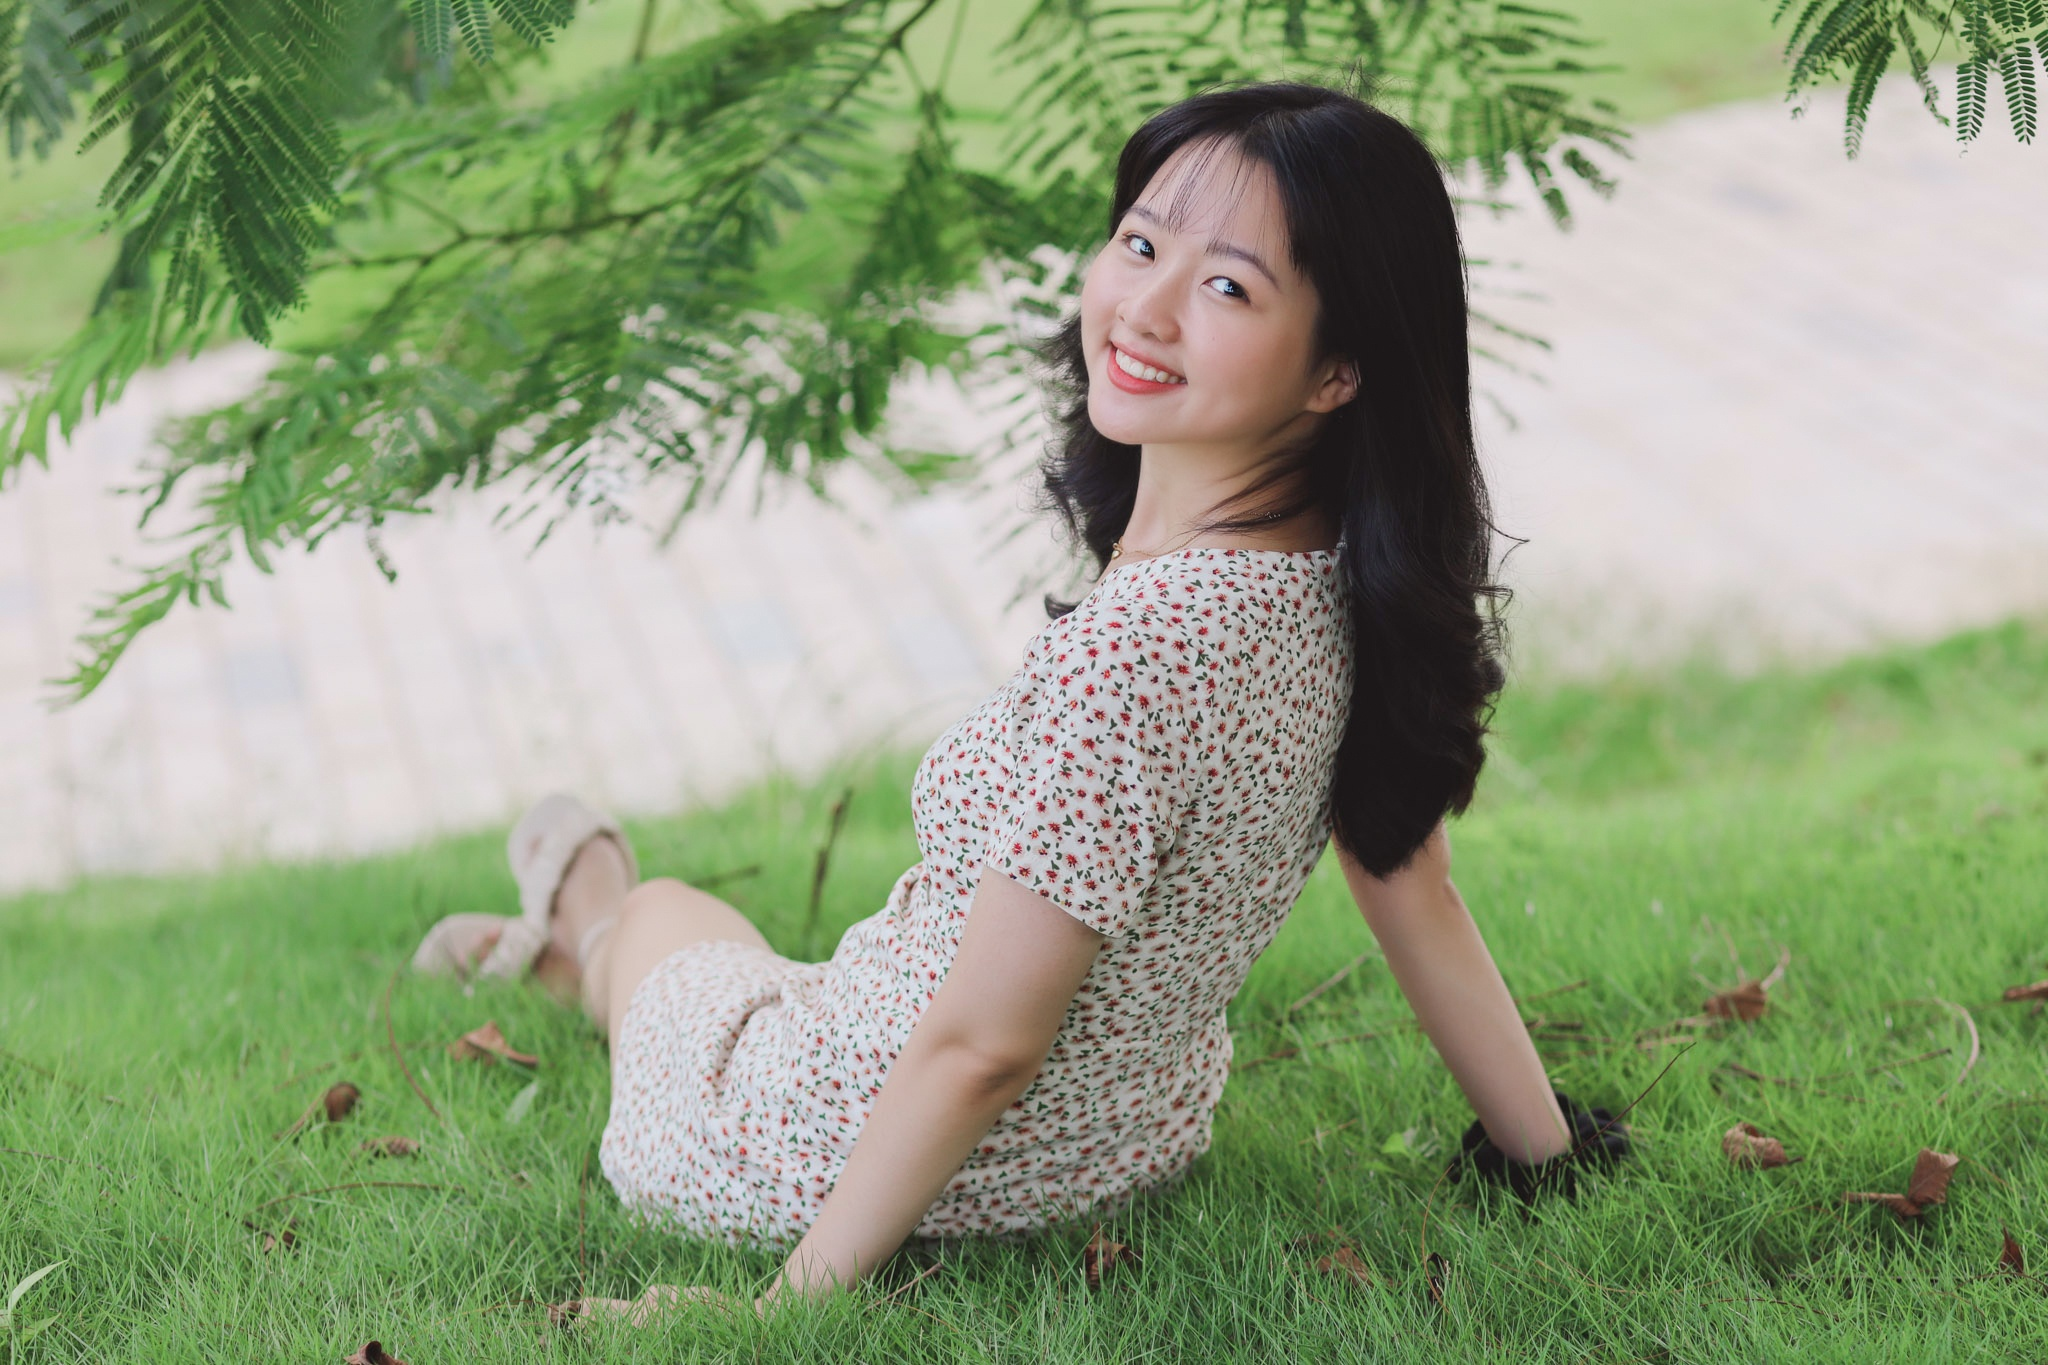 dien vien lam thanh my tuoi 15 anh 8